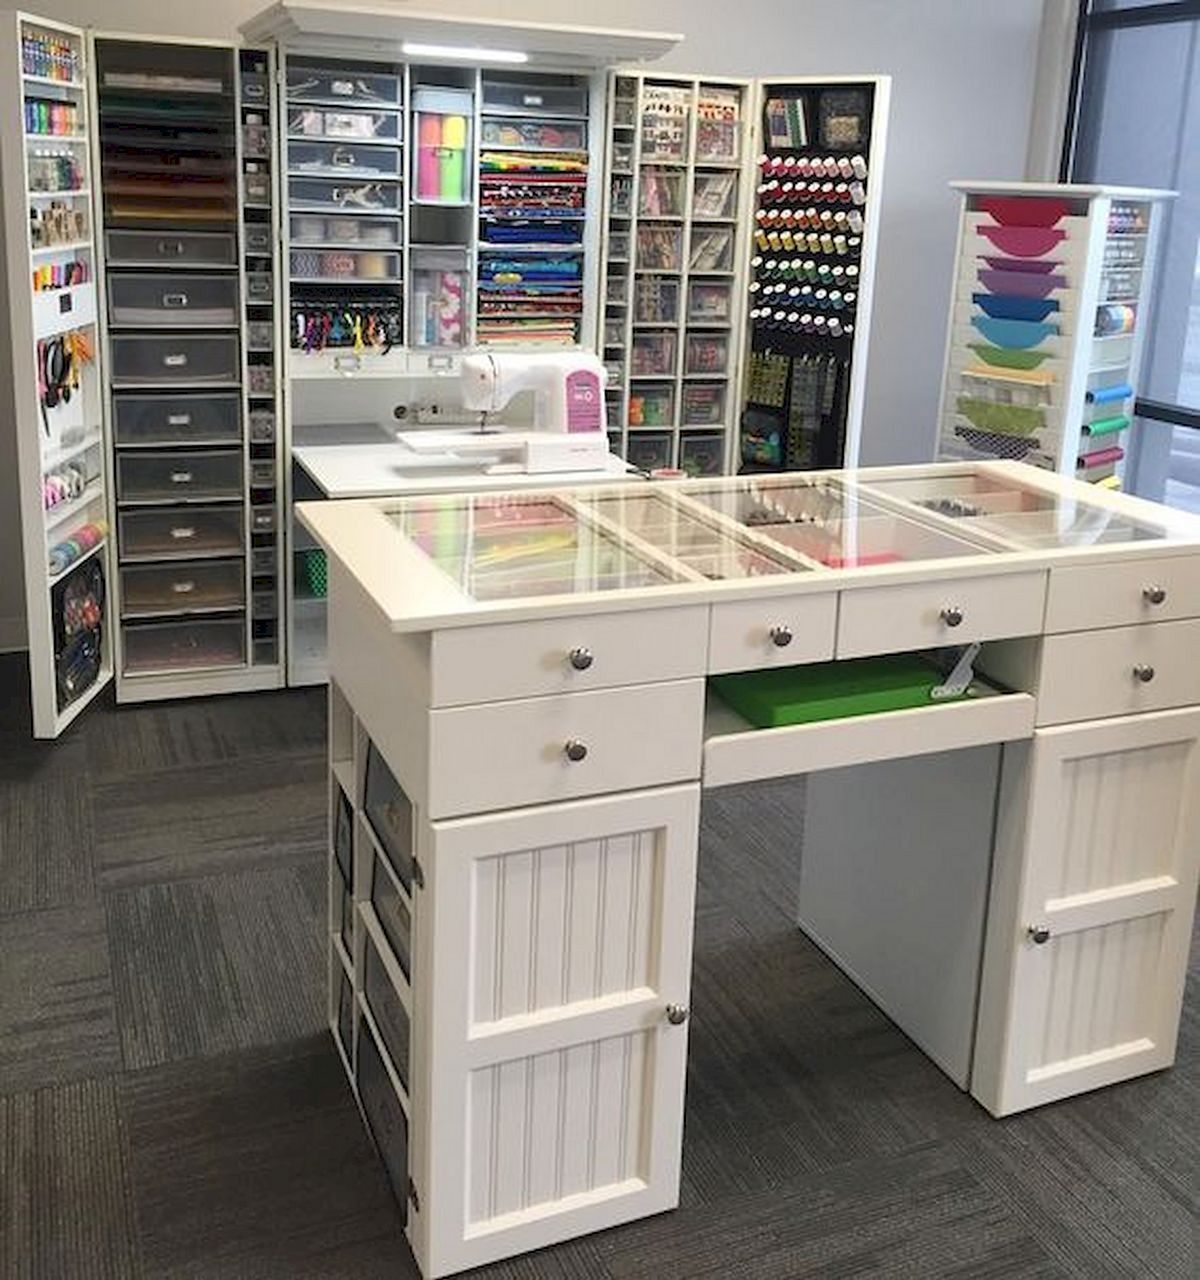 15 Wonderful Ikea Craft Room Table Design With Storage And Organization Ideas Share924sharesdo You Have A Cra Ikea Craft Room Diy Crafts Desk Craft Room Tables